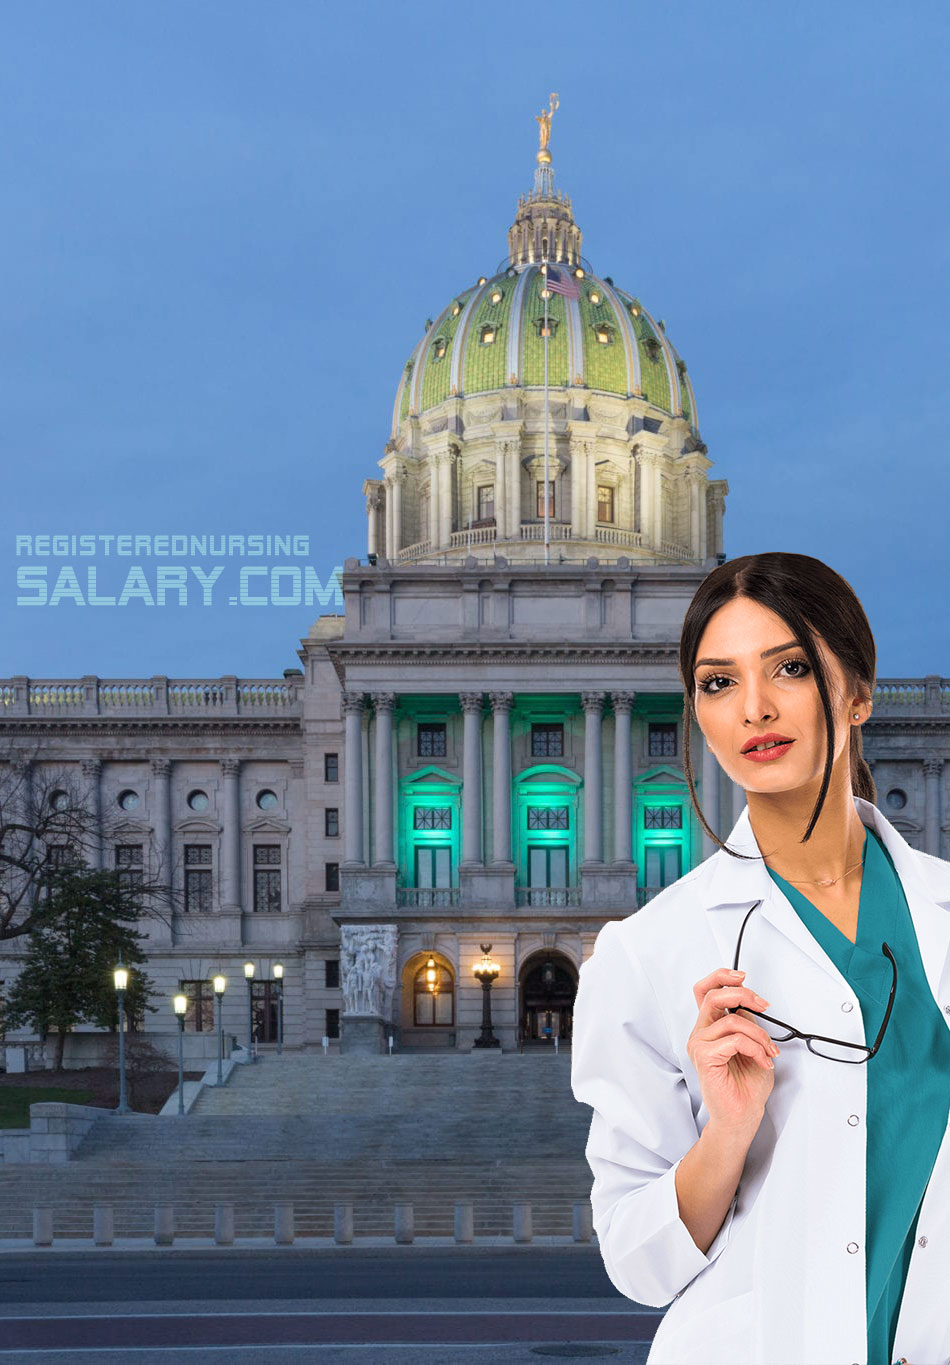 registered nurse salary in pennsylvania